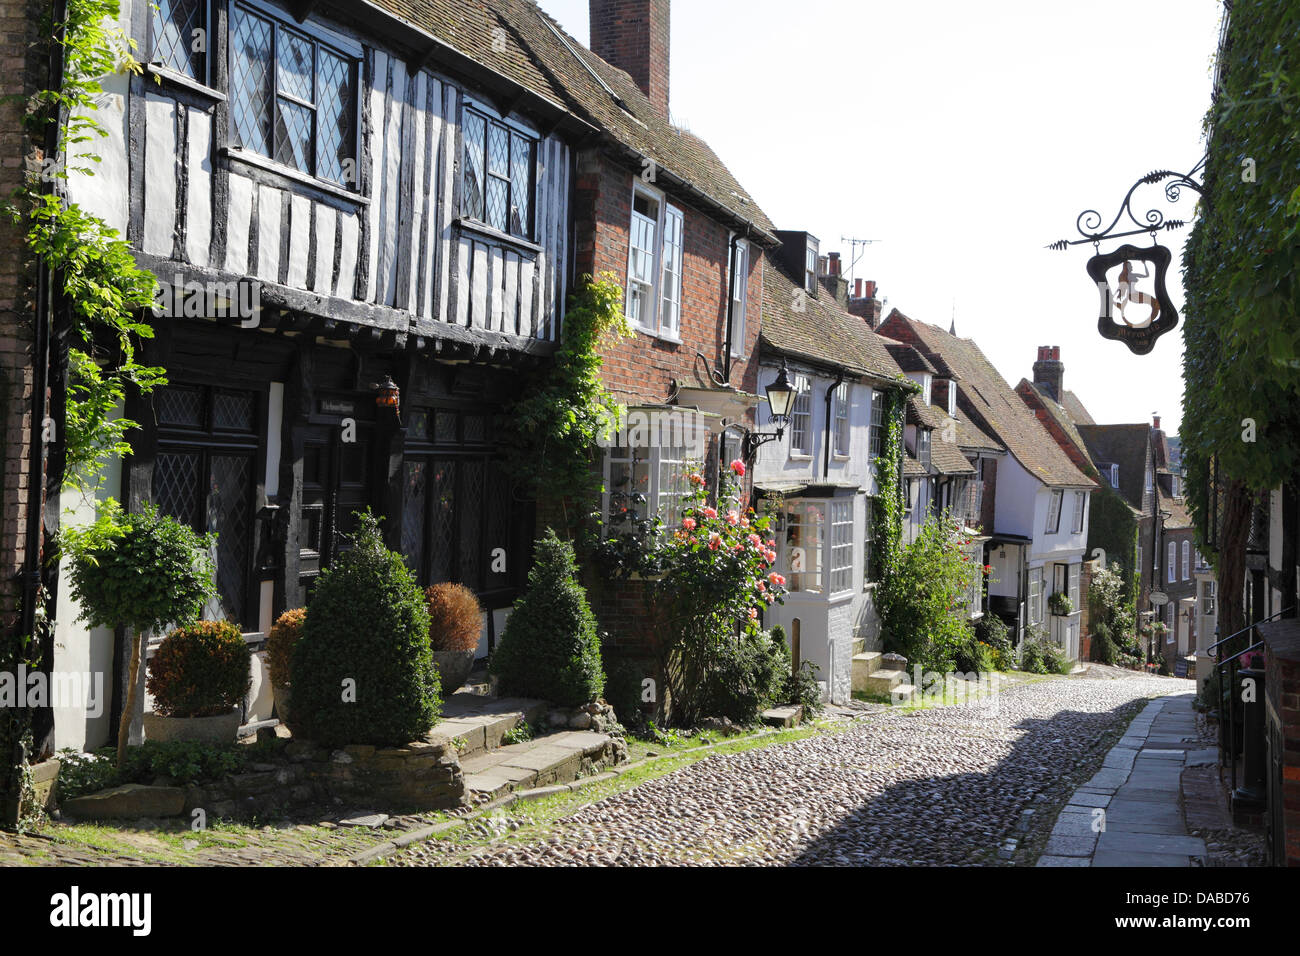 Mermaid Street, Rye, East Sussex, Angleterre, RU, FR Photo Stock